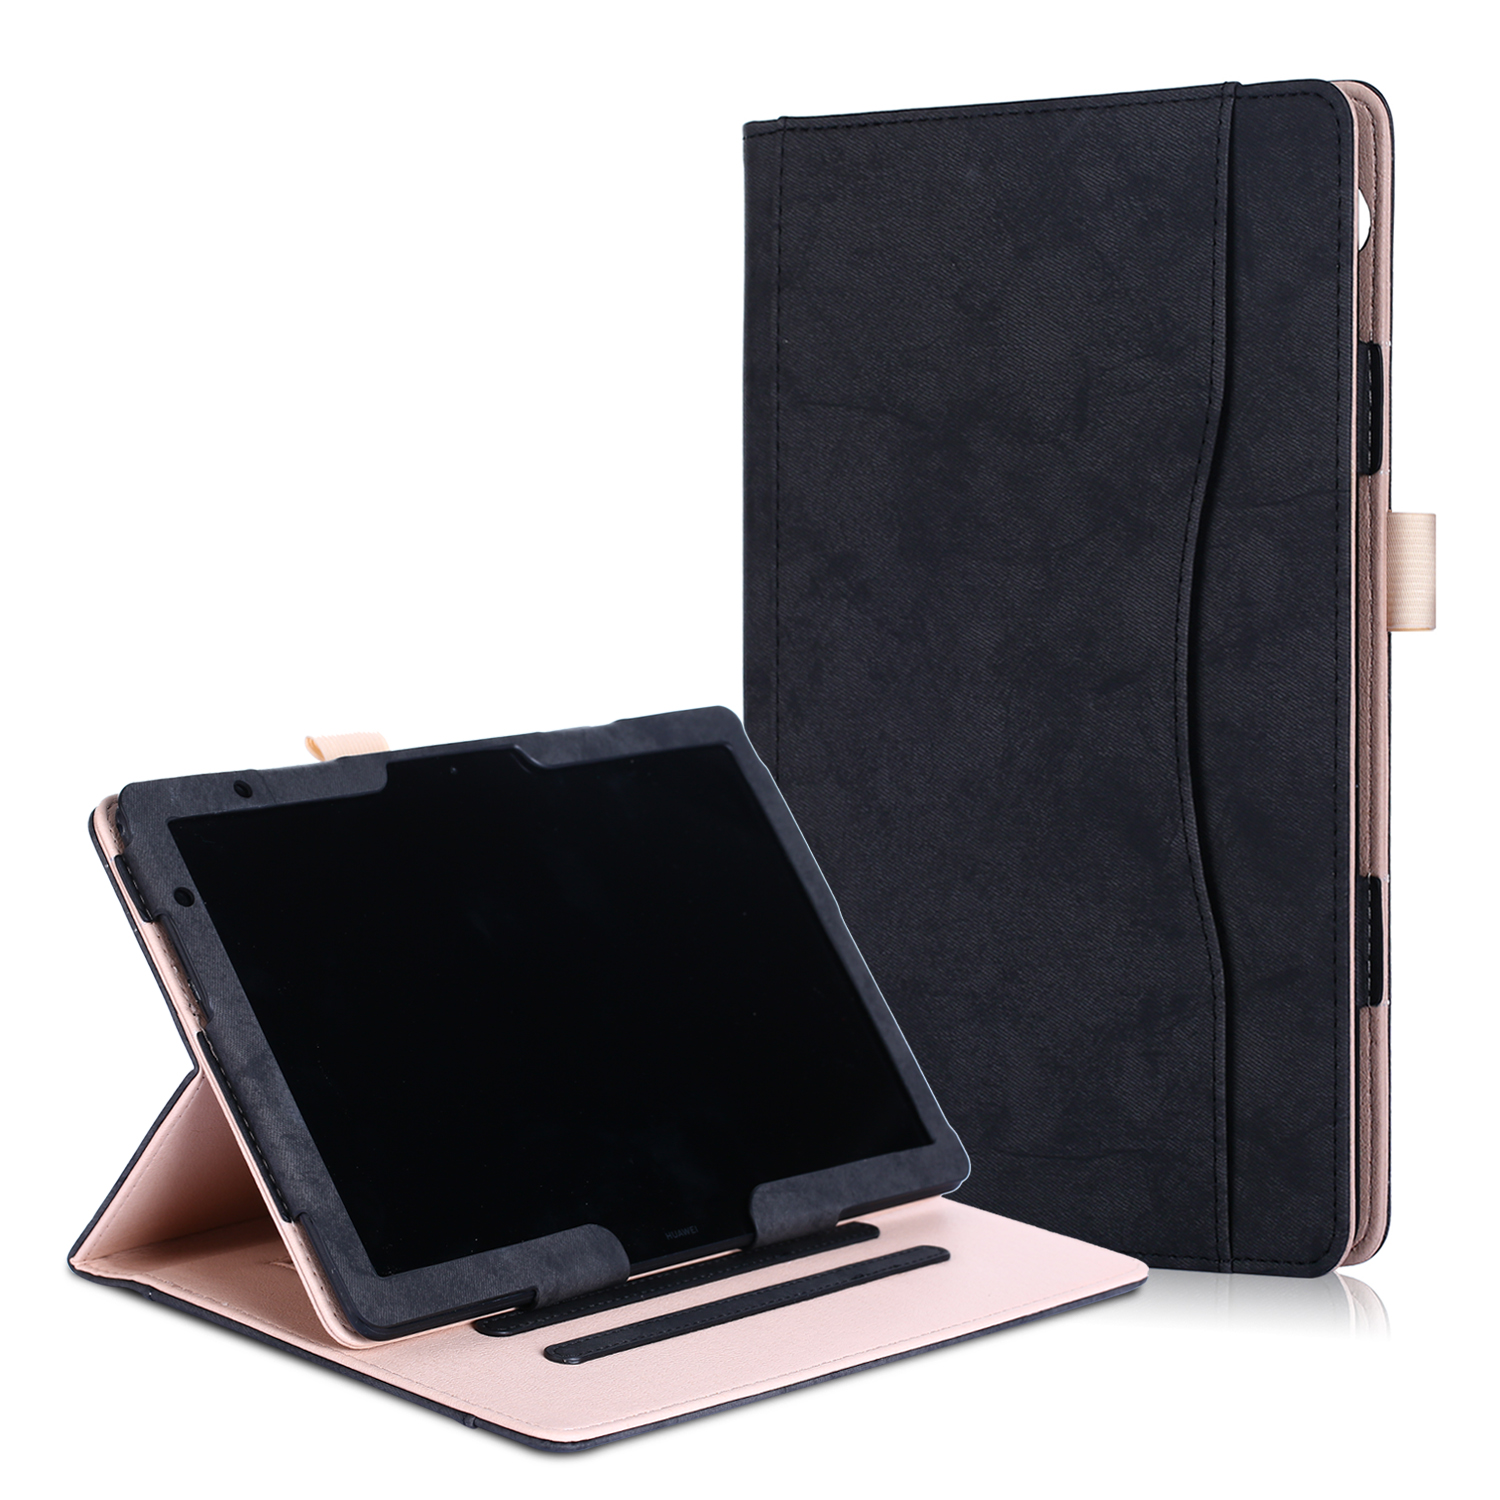 Case For Funda Huawei Mediapad M5 Lite 10 BAH2-W19/L09/W09 Honor Pad 5 Cover For Huawei T5 10 AGS2-W09/L09/L03/W19 Tablet Case